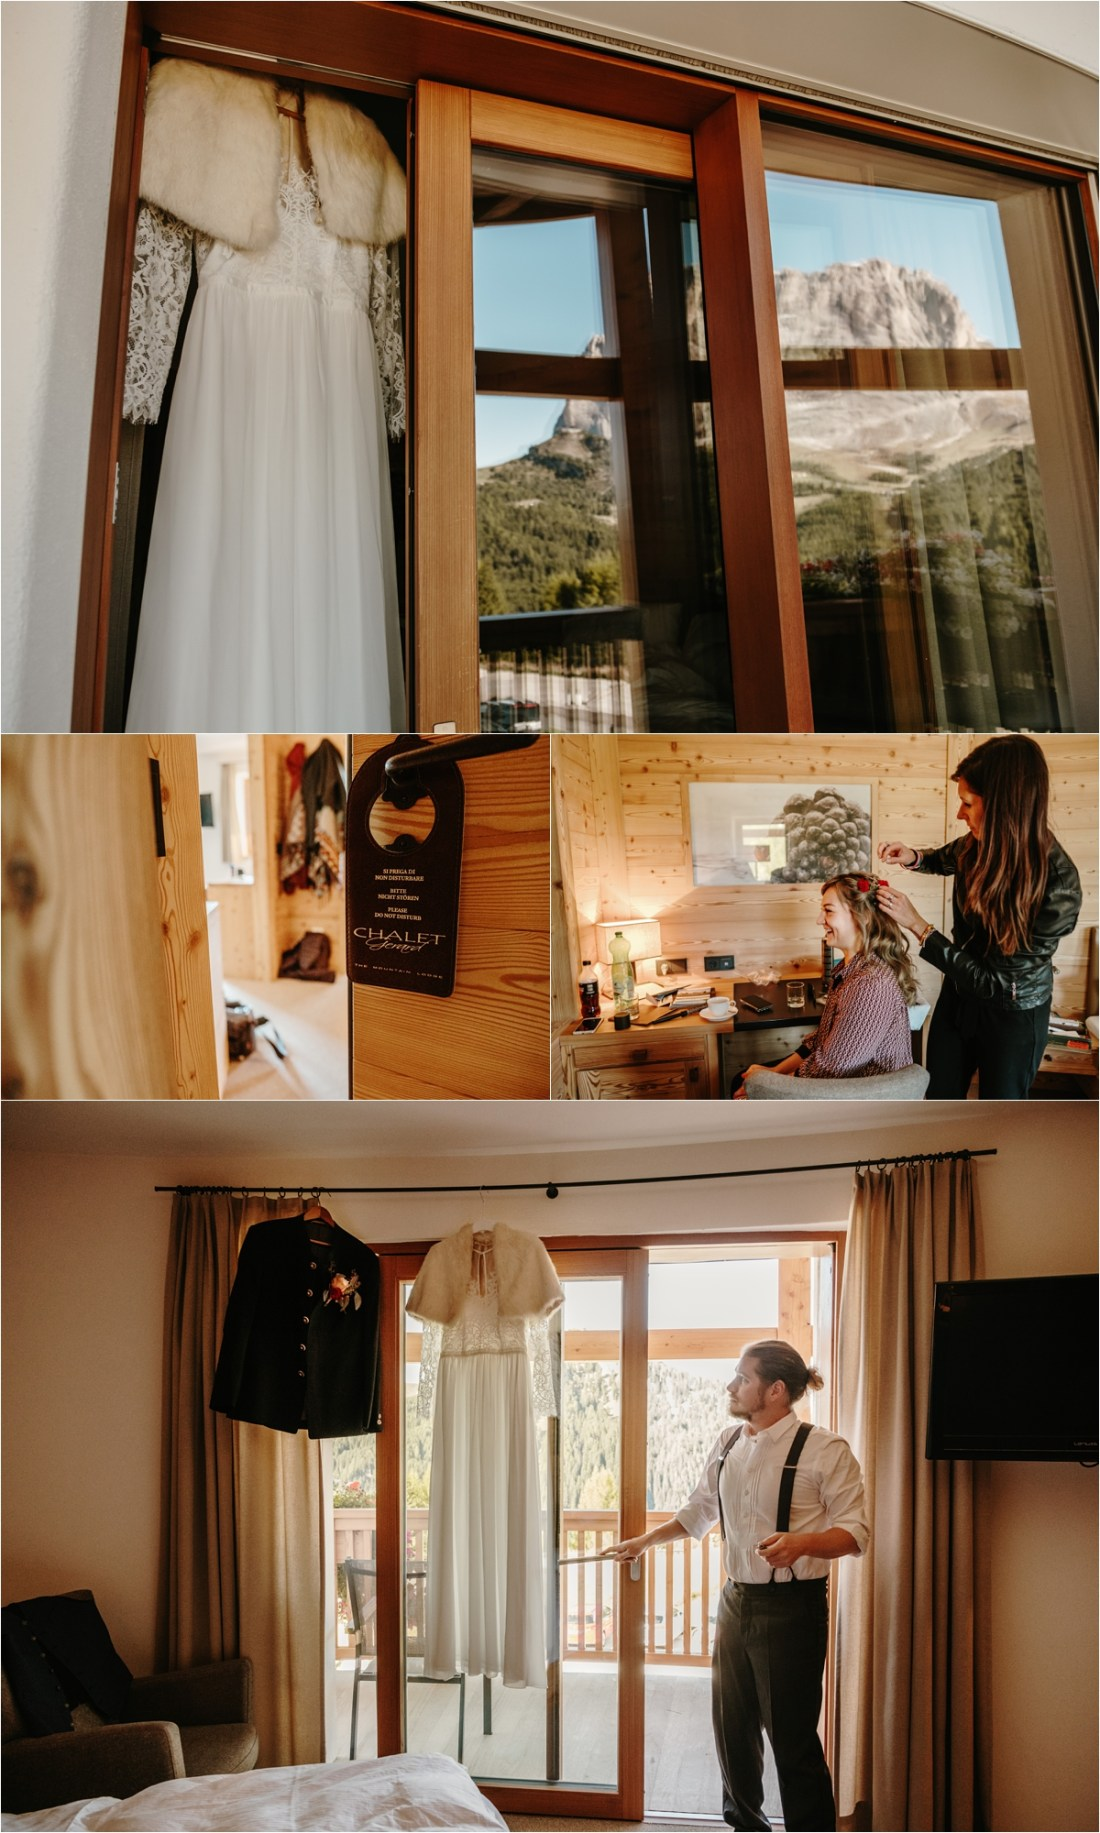 Anna & John getting ready for their elopement at Chalet Gerard in the Dolomites. Photos by Wild Connections Photography